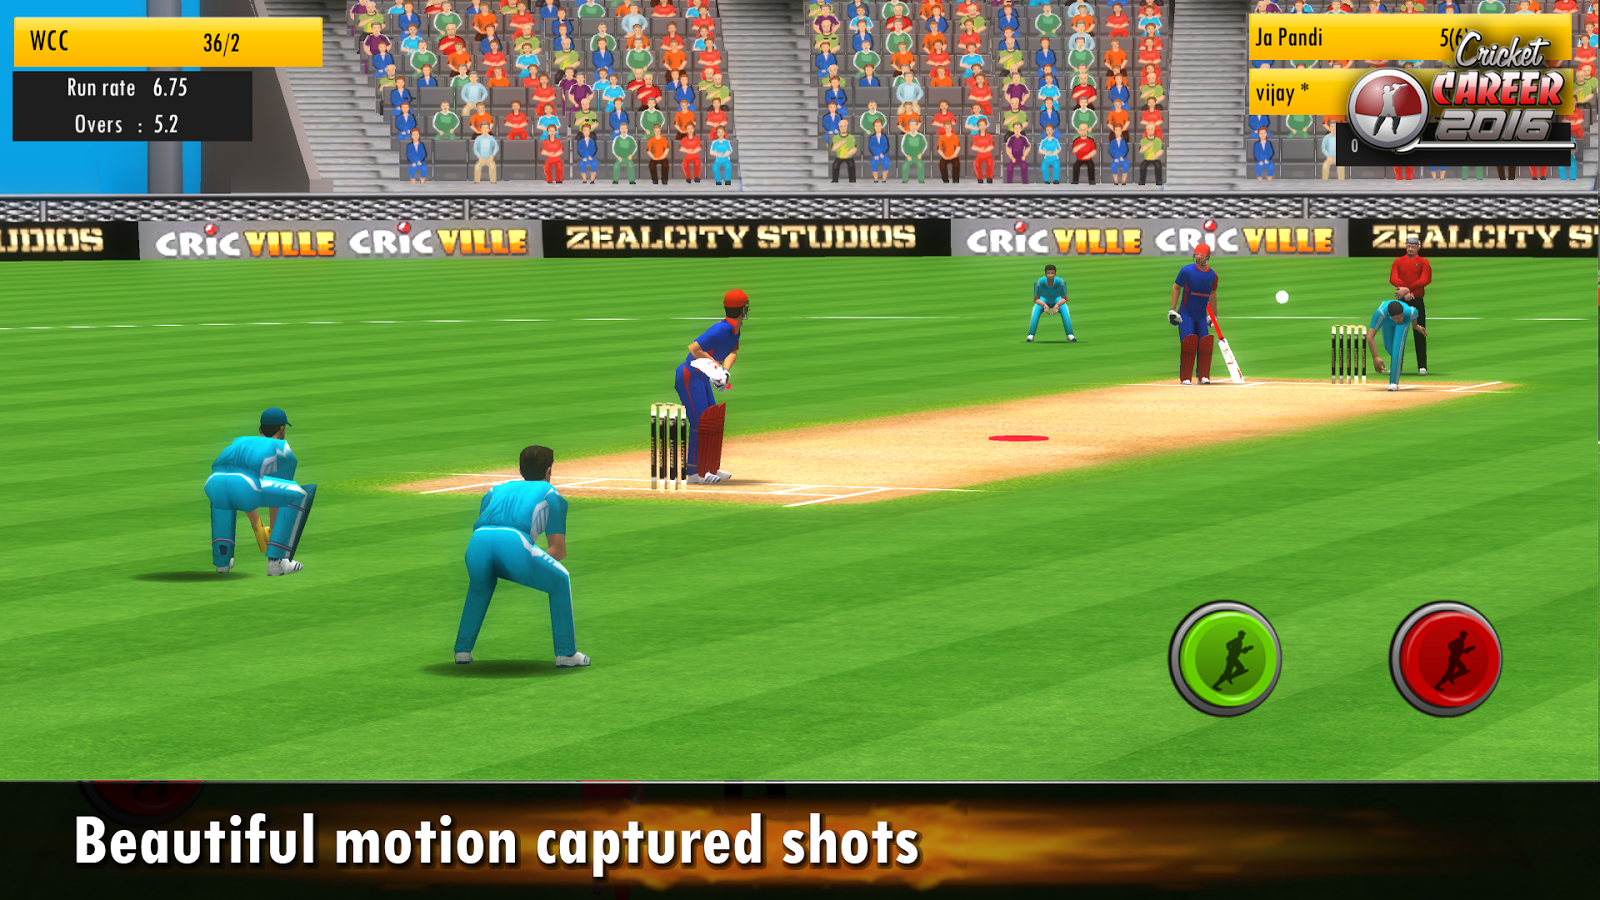 Cricket Career 2016 Android Apps On Google Play